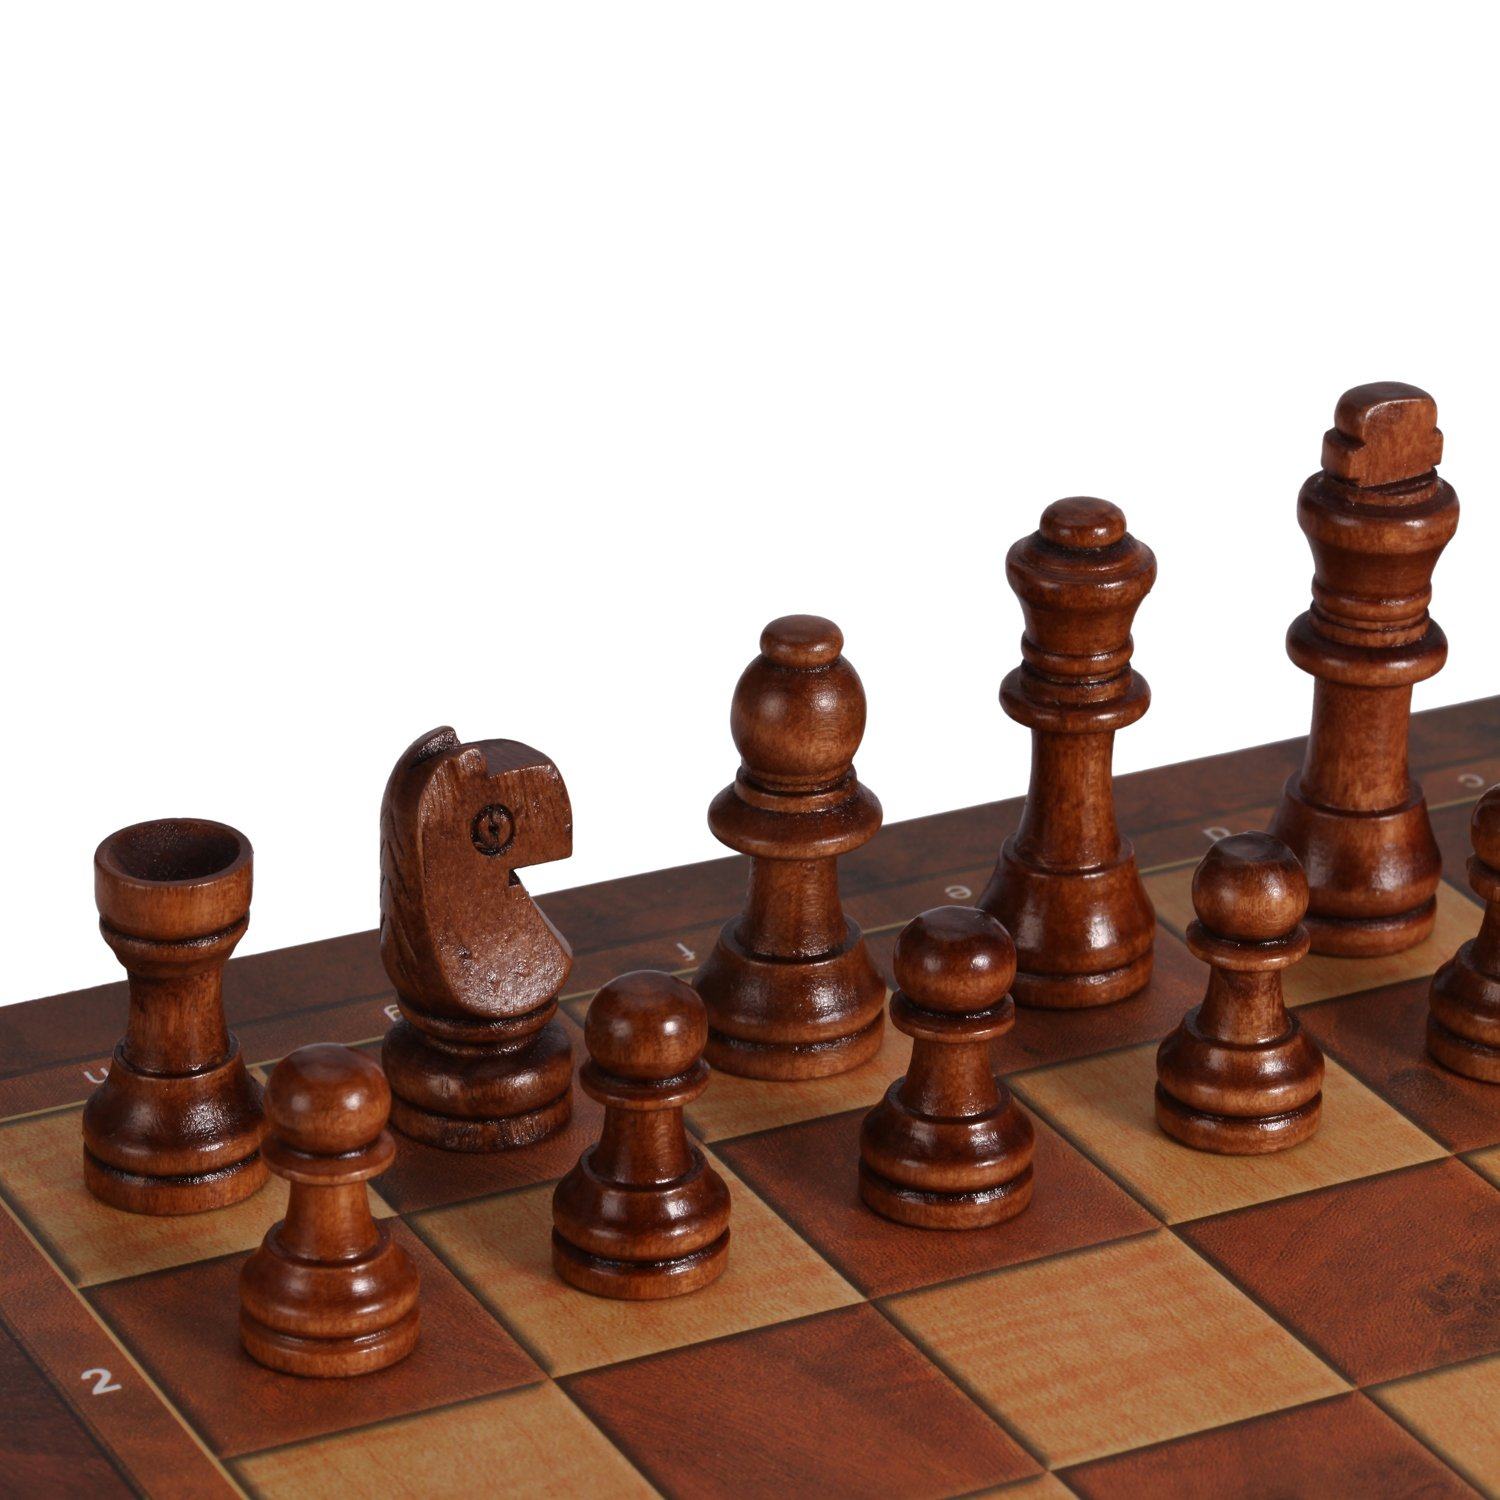 Joview 3-in-1 Folding Travel Chess /& Checkers /& Backgammon Wooden Chess Set for Kids or Adults Chess Board Game 9.5X9.5X0.8Inch Beige/&Dark Brown Chess Pieces /…